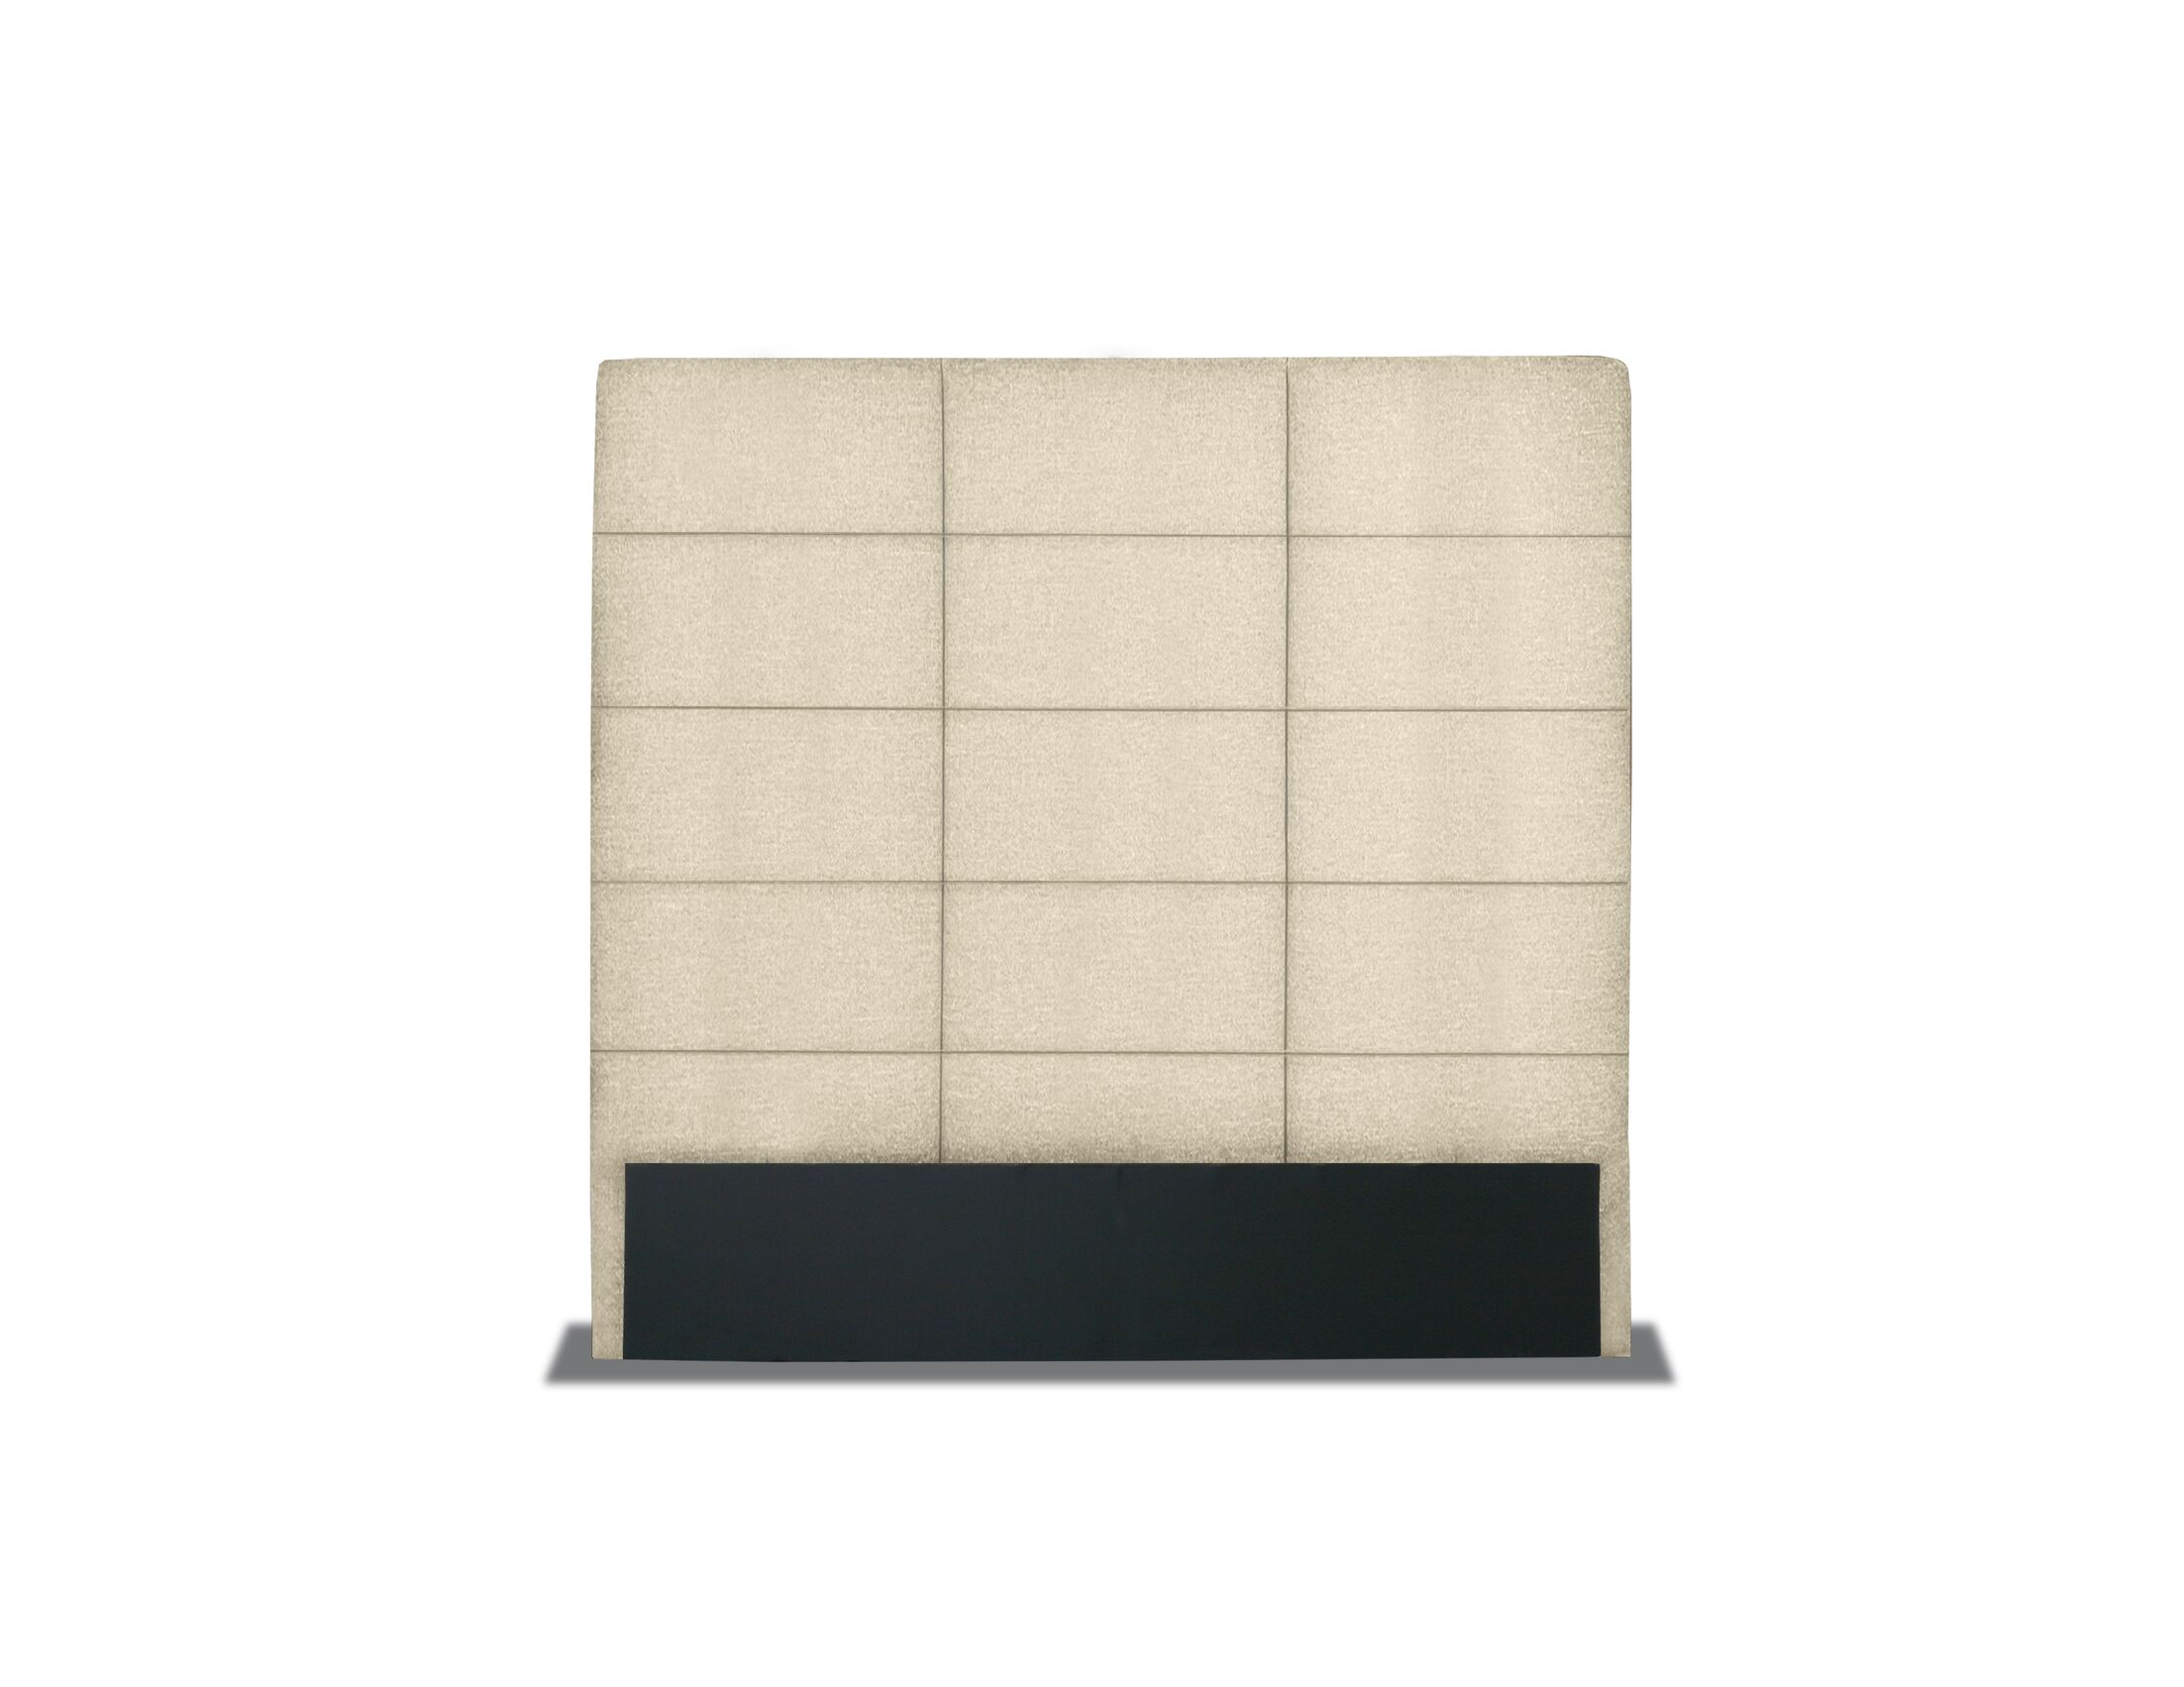 Handley Tufted Upholstered Panel Headboard Size: High Height California King, Color: Sand